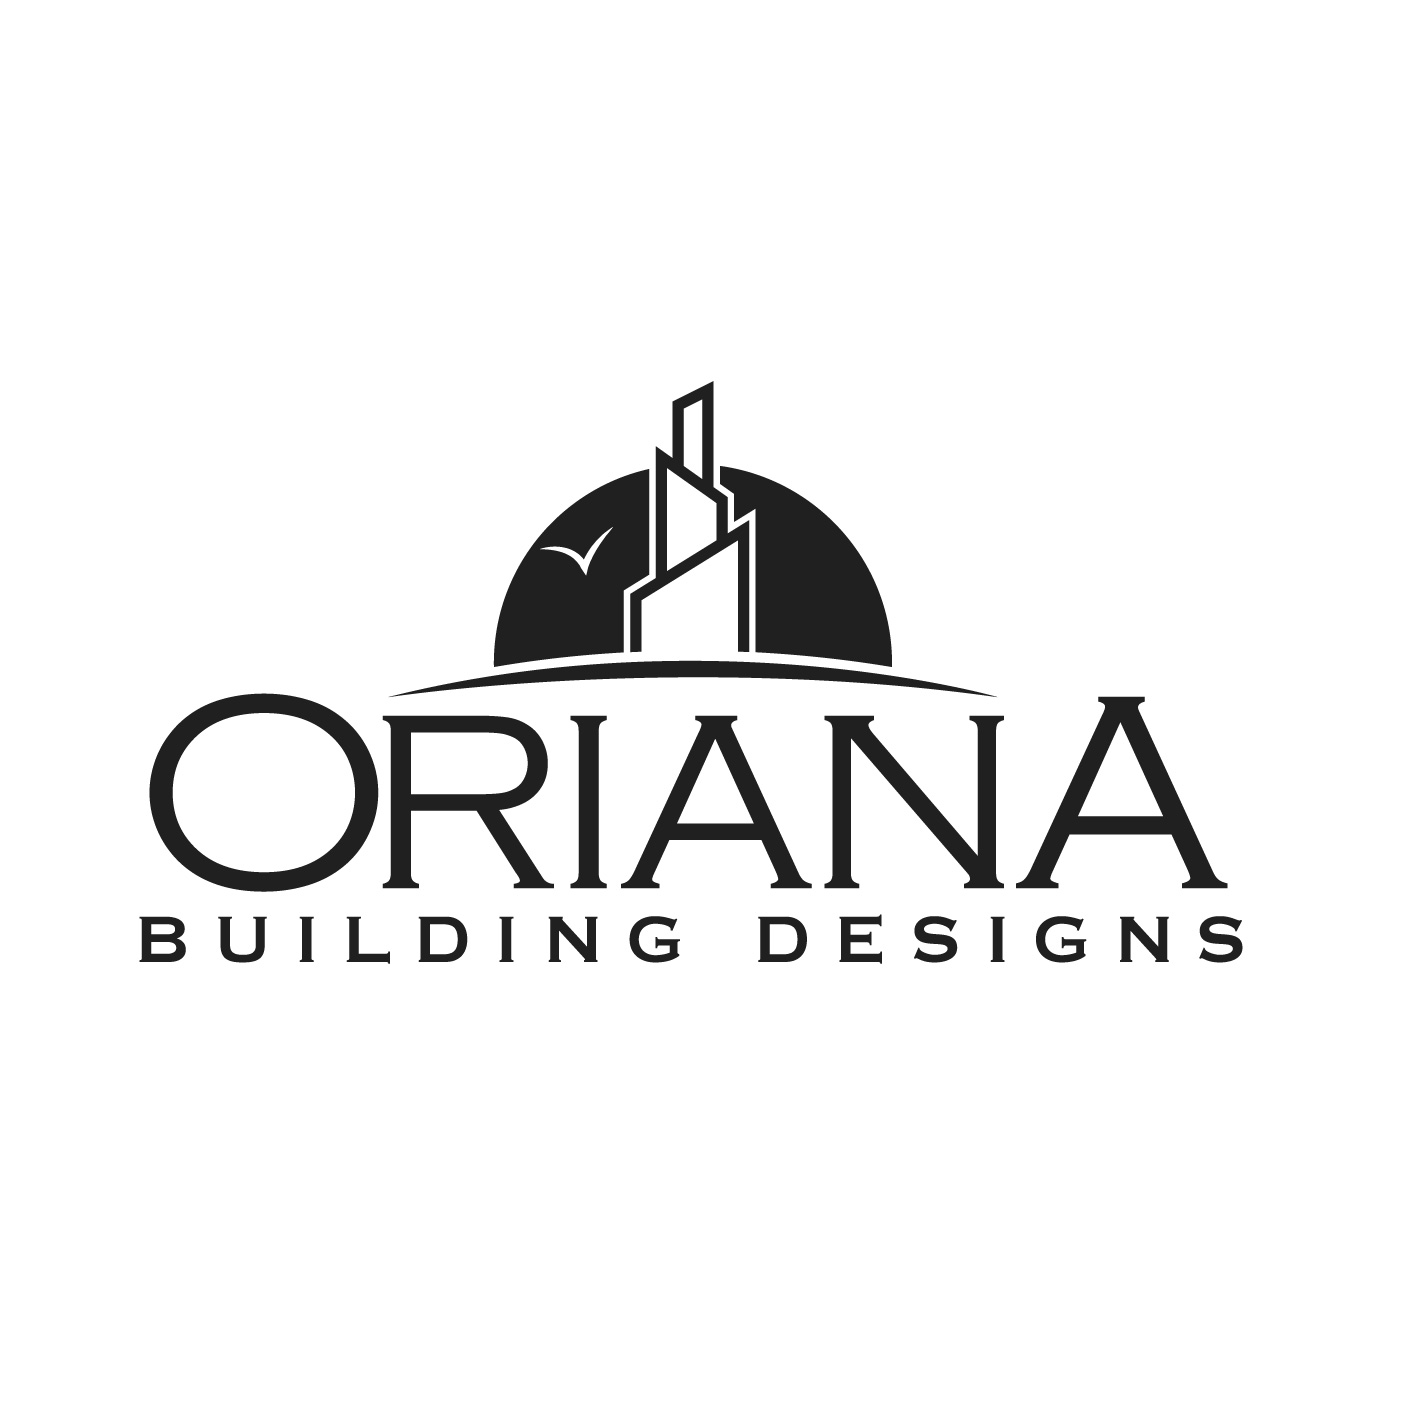 Oriana Building Design